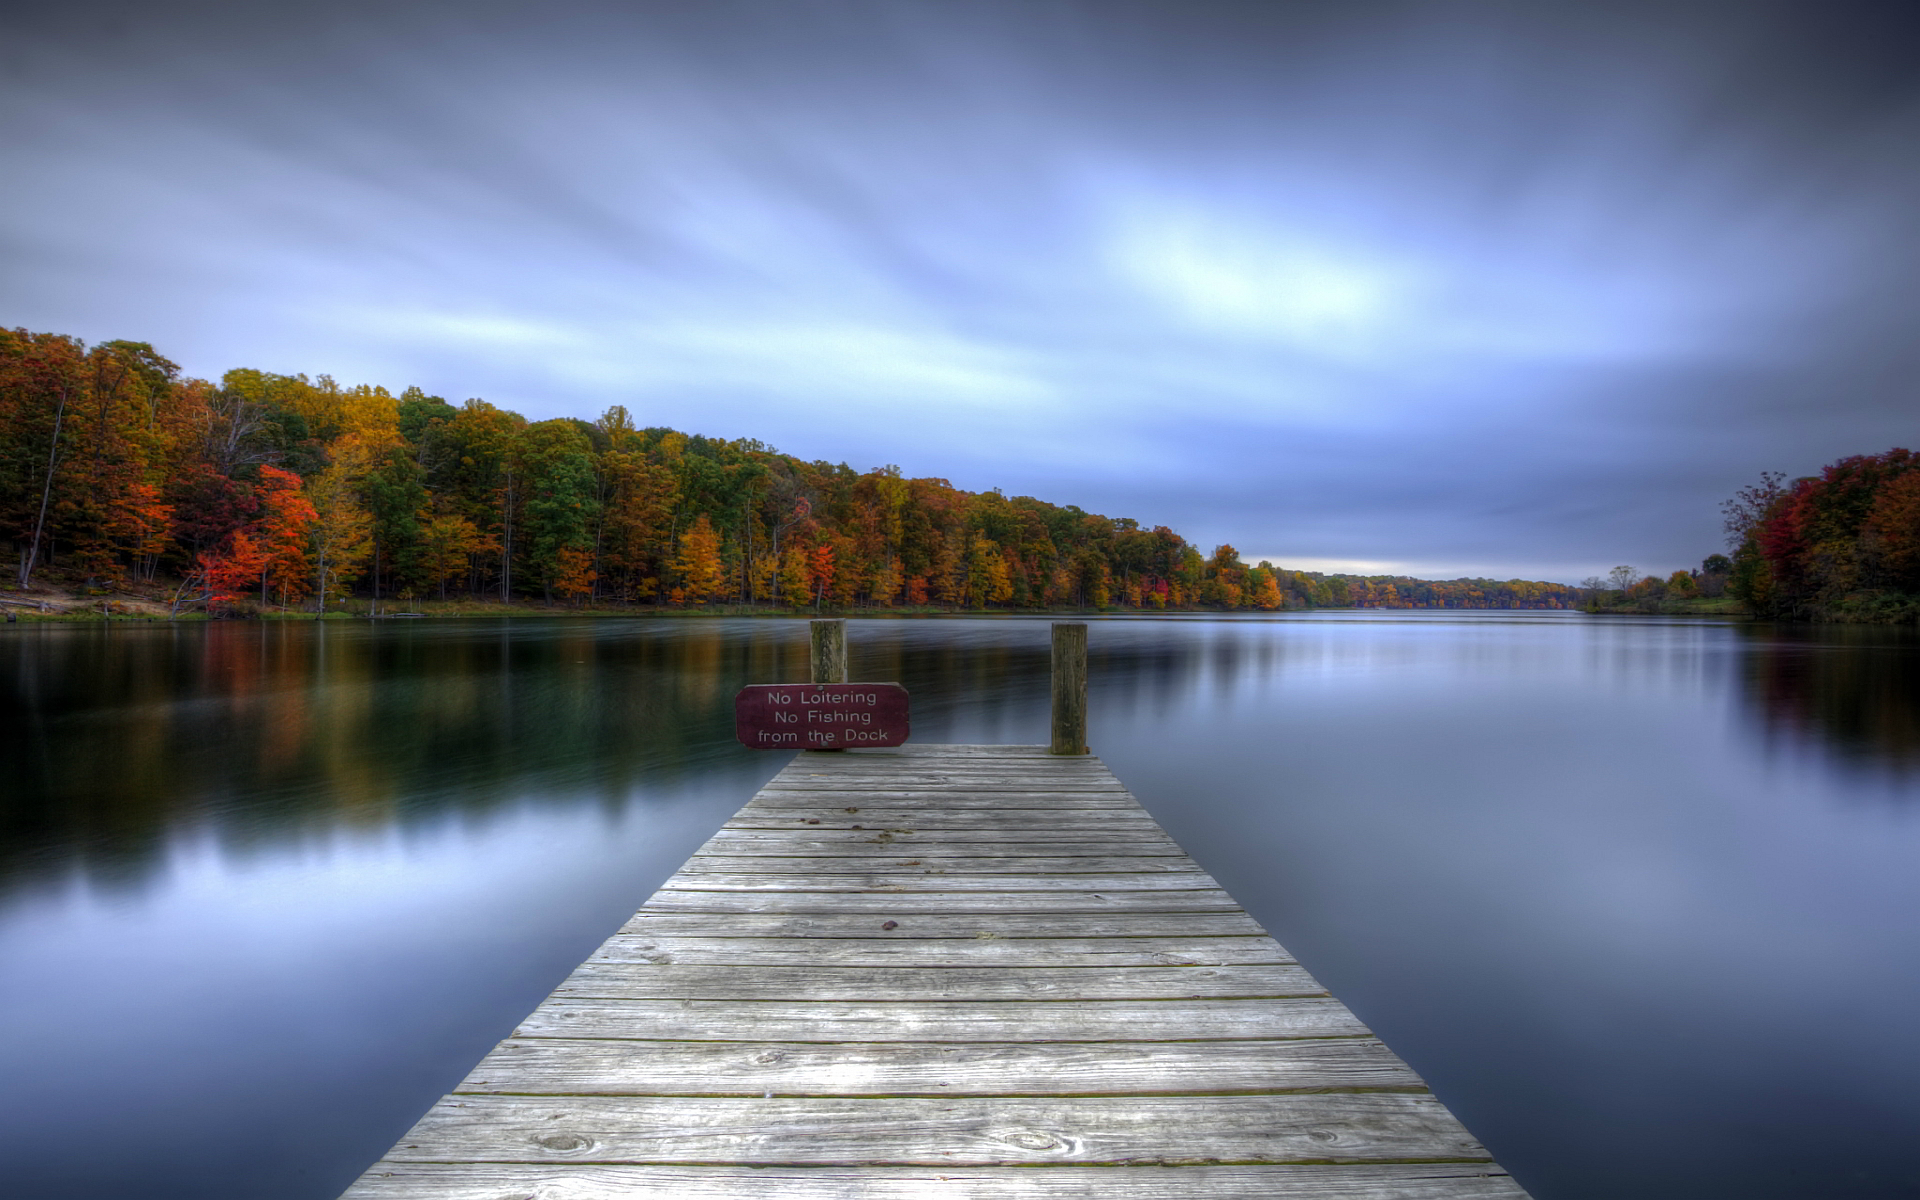 lake wallpaper hd 5343 - photo #42